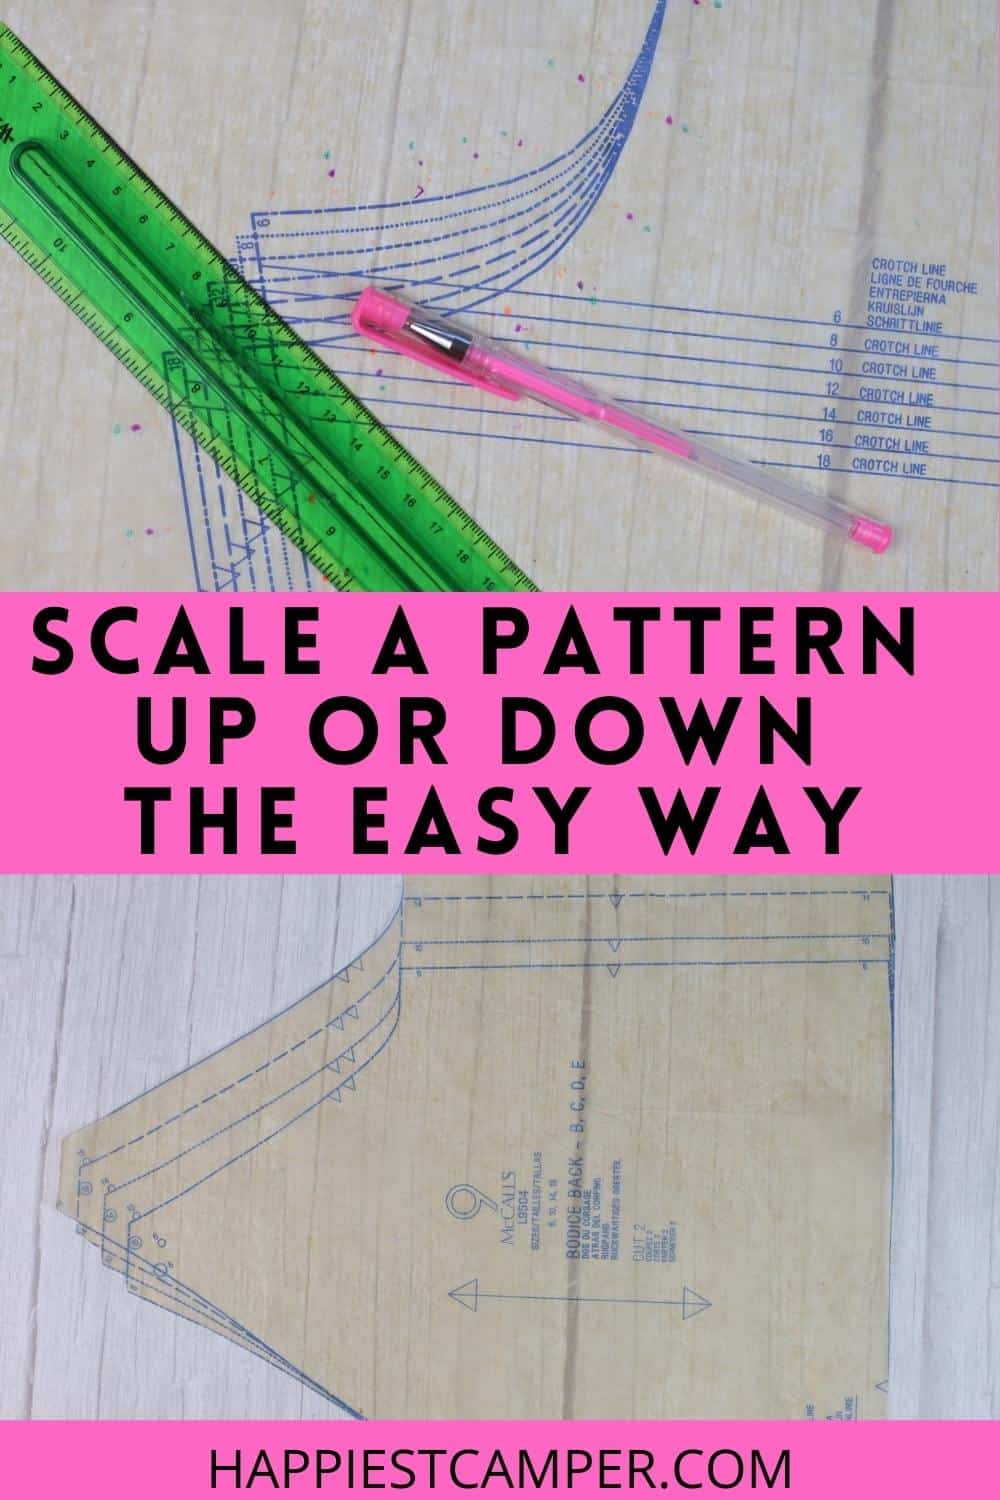 Scale A Pattern Up Or Down The Easy Way